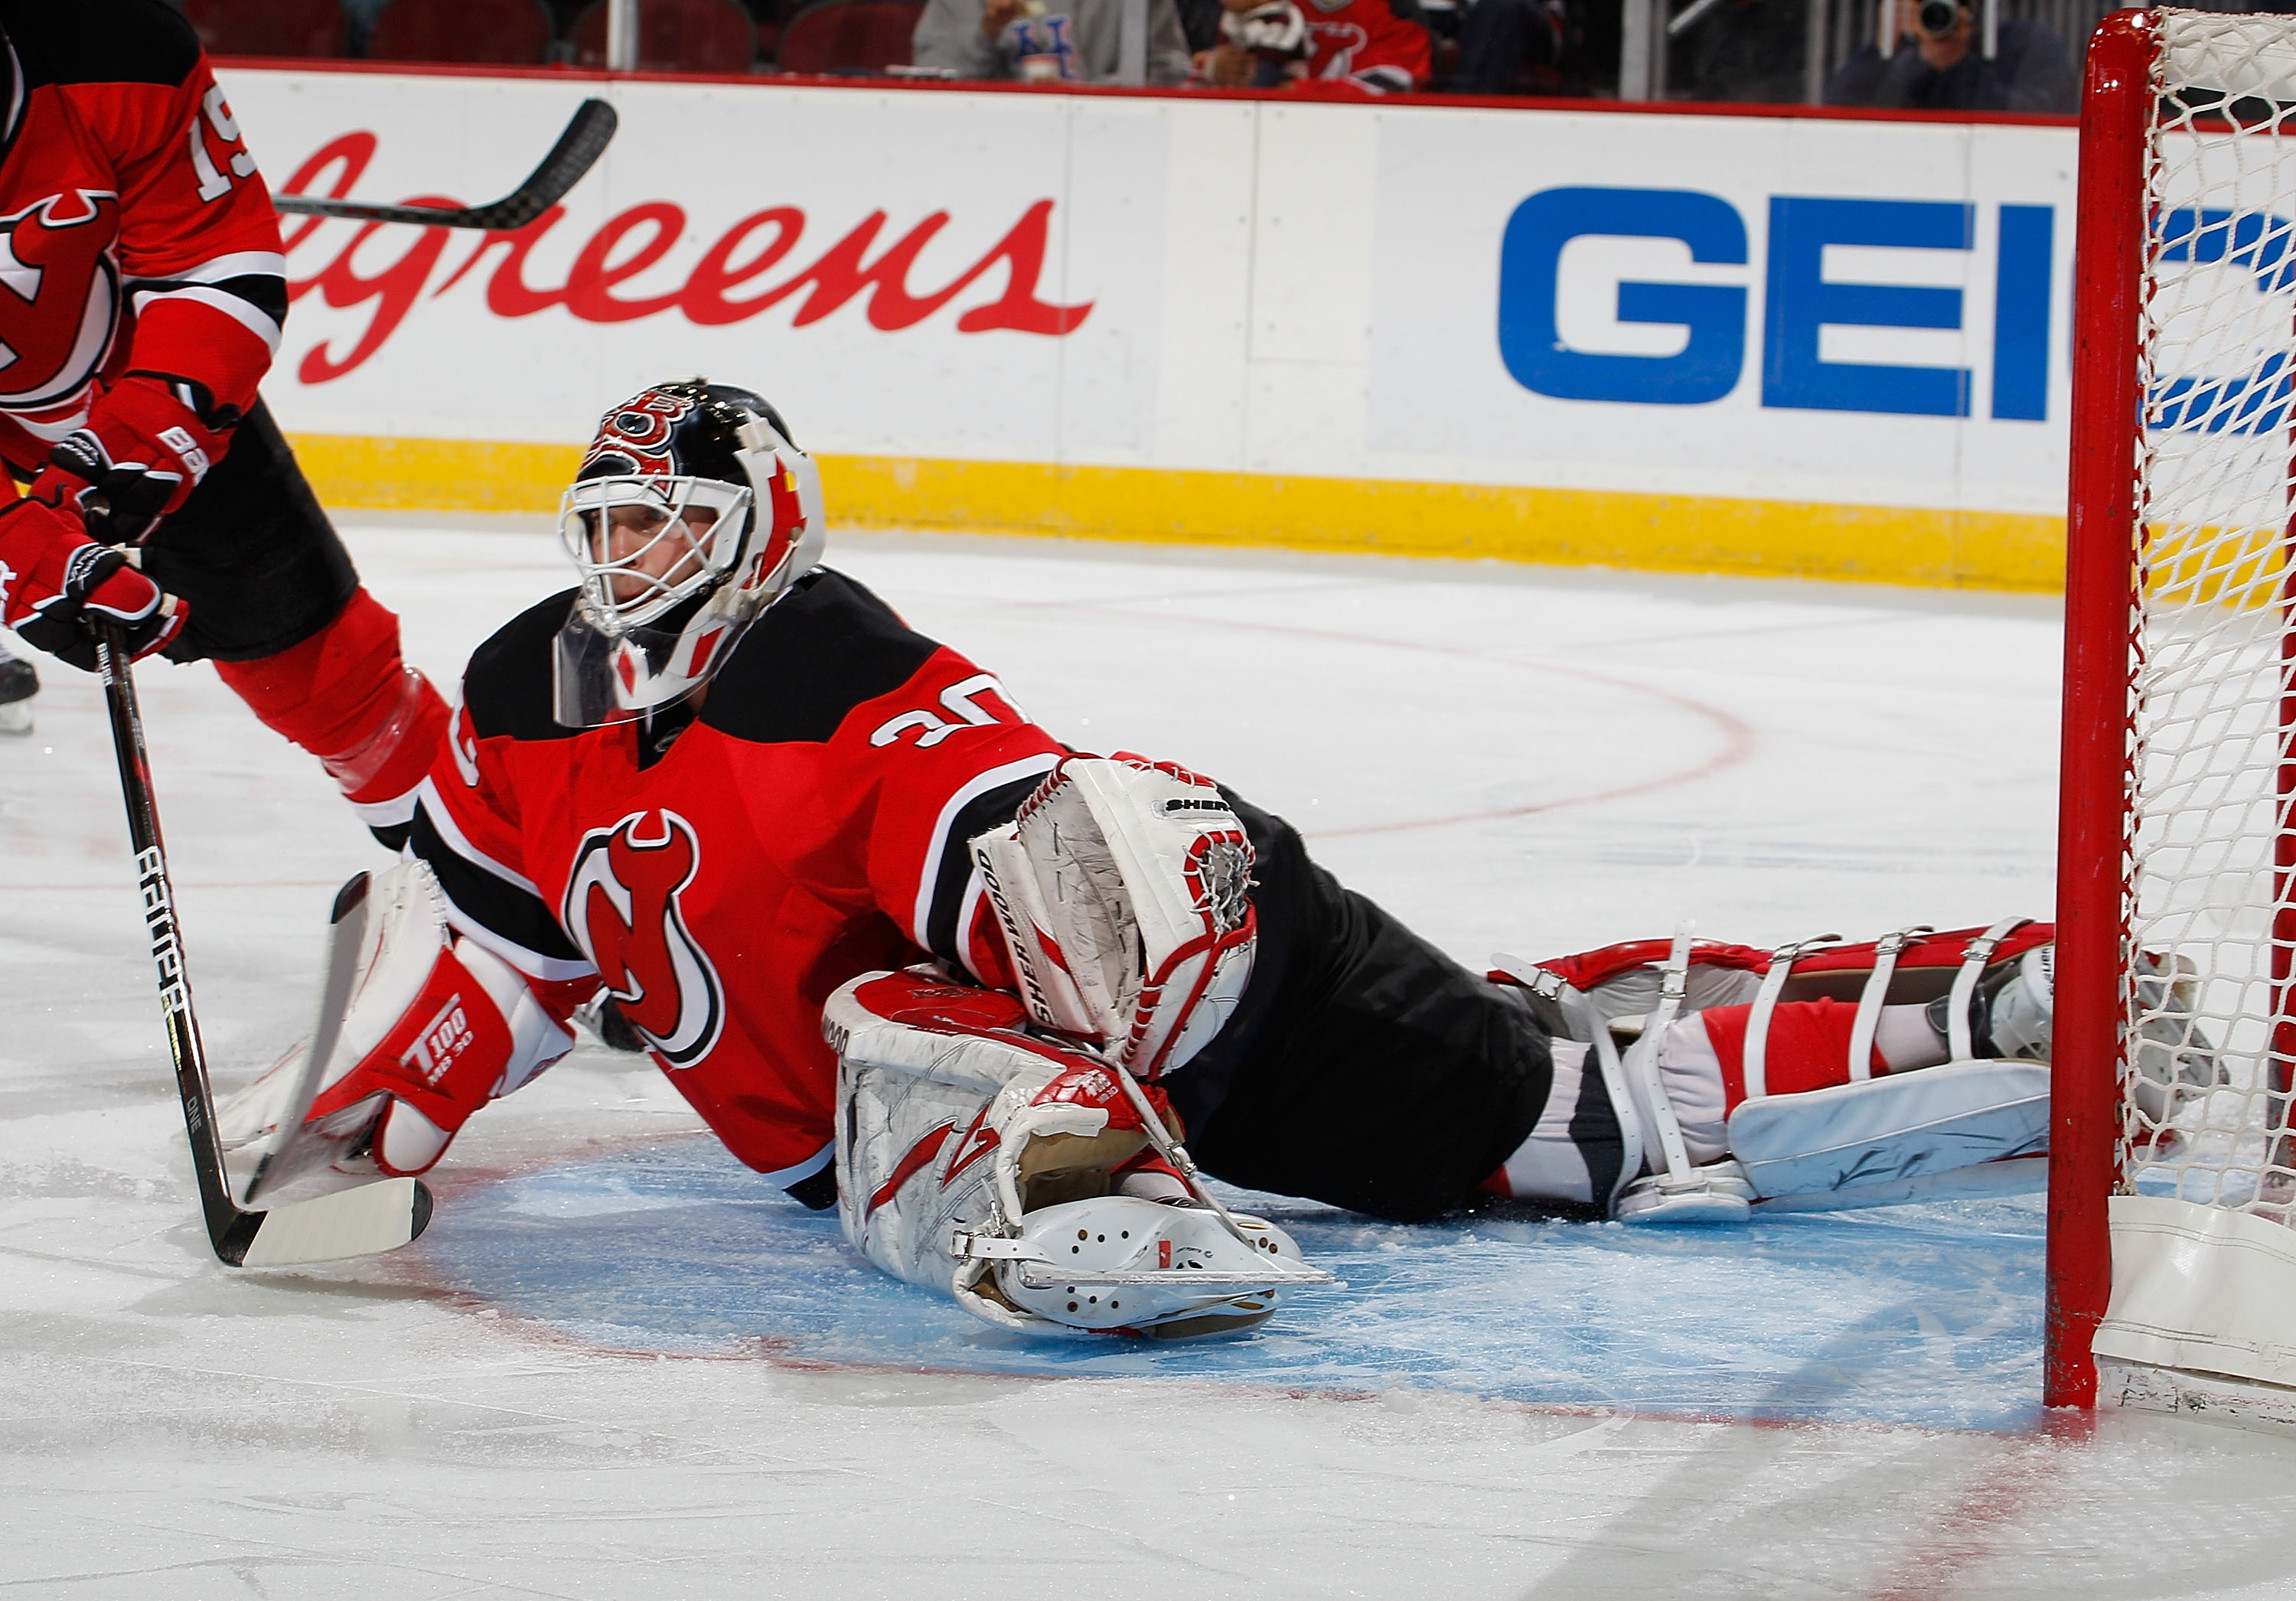 NEWARK, NJ - MARCH 02:  Martin Brodeur #30 of the New Jersey Devils makes a diving save during the first period of an NHL hockey game against the Tampa Bay Lightning at the Prudential Center on March 2, 2011 in Newark, New Jersey.  (Photo by Paul Bereswil